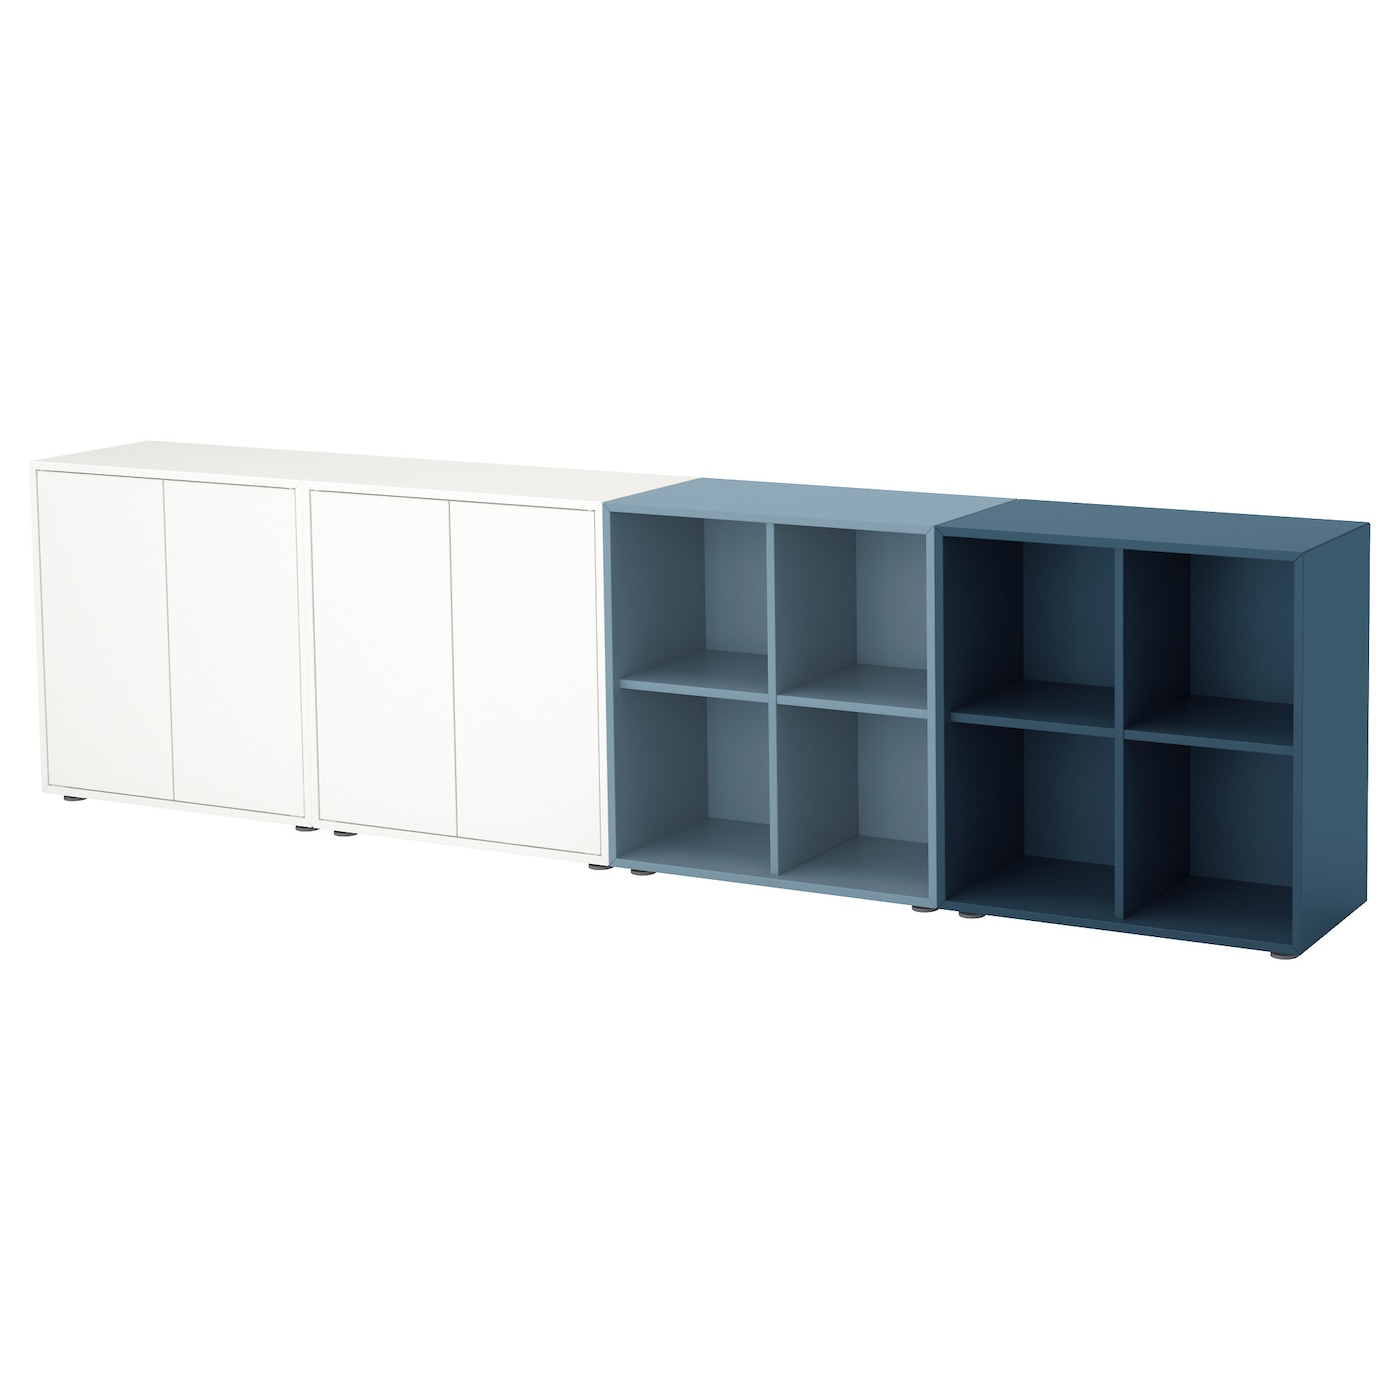 Eket Cabinet Combination With Feet White Light Blue Dark